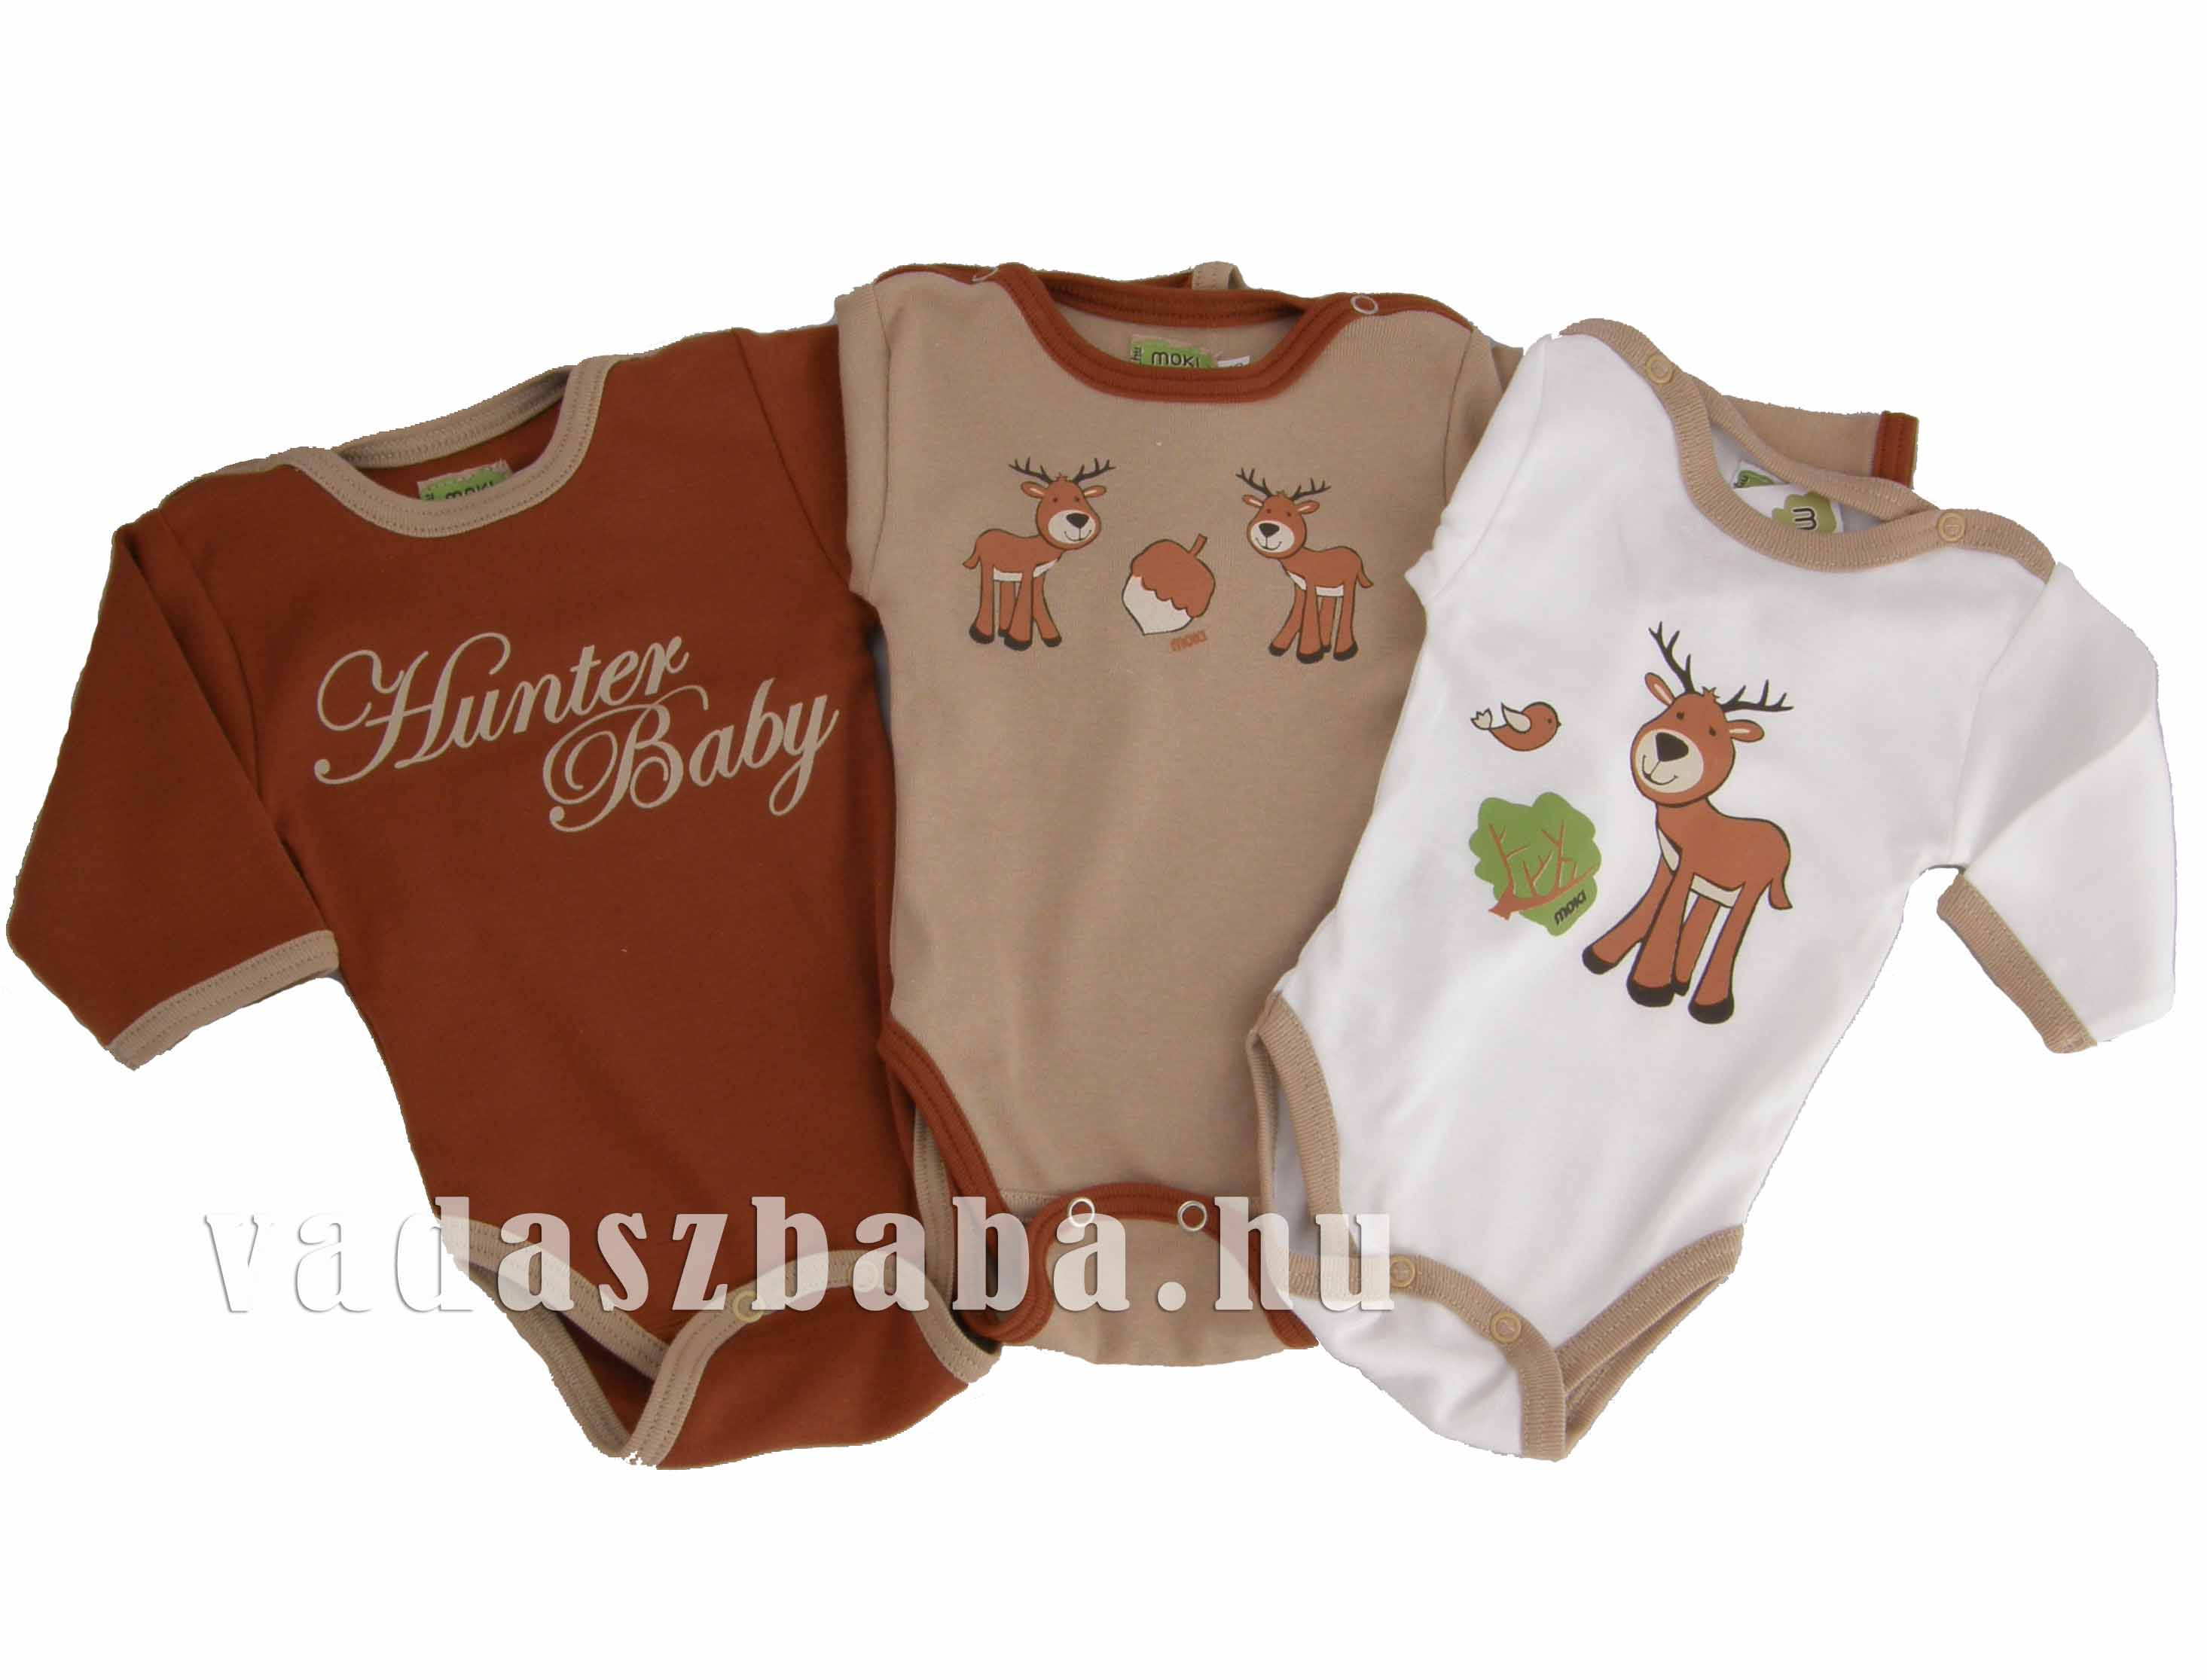 Hunter Baby feliratos rozsdabarna body. Hunter ... d4ca0b3309